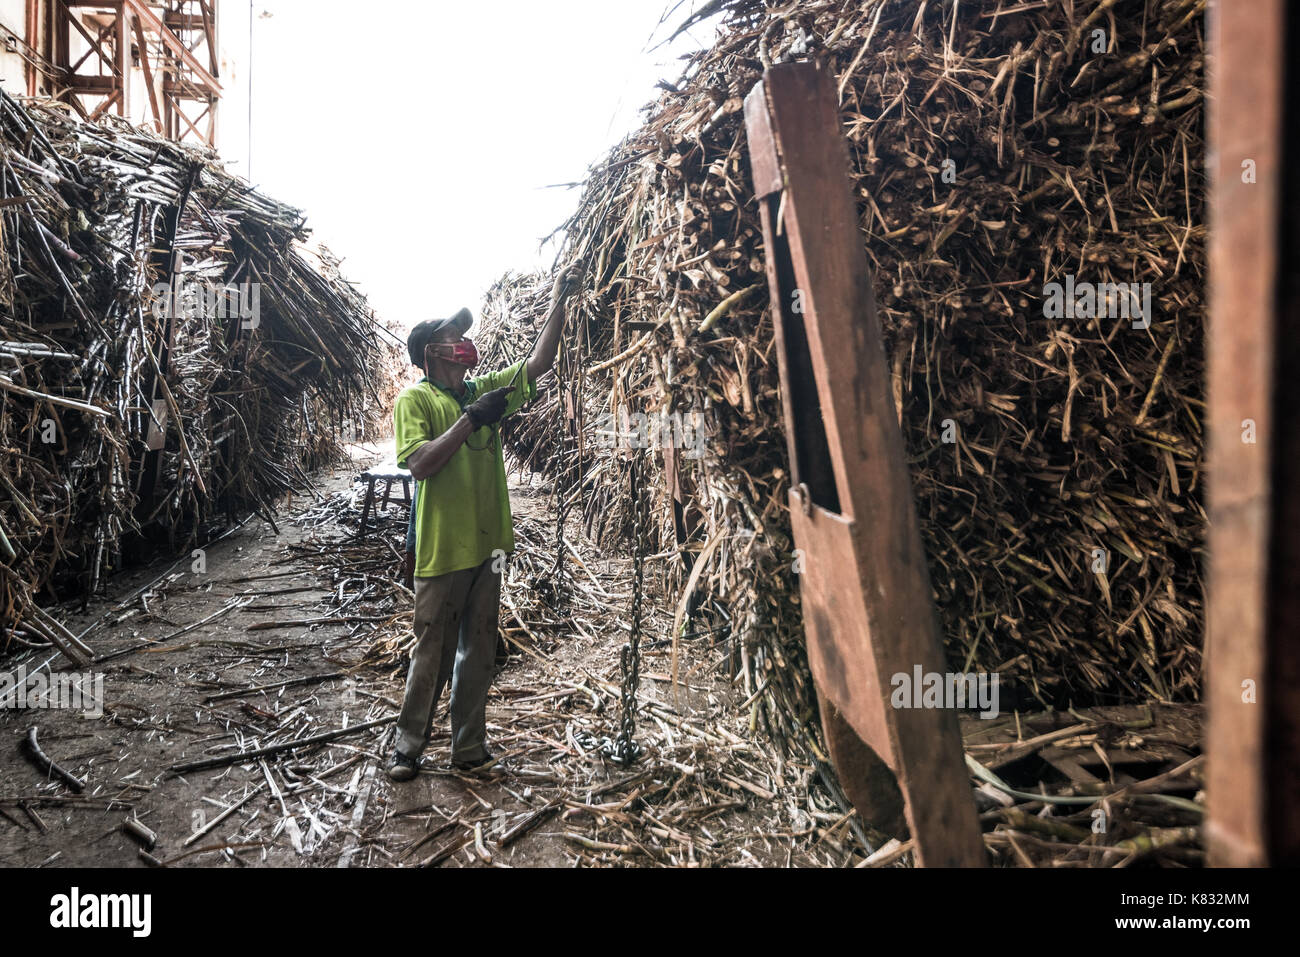 A factory worker arranges and checks the sugarcane pieces at the receiving and unloading section of Tasikmadu Sugar Mill in Central Java, Indonesia. - Stock Image